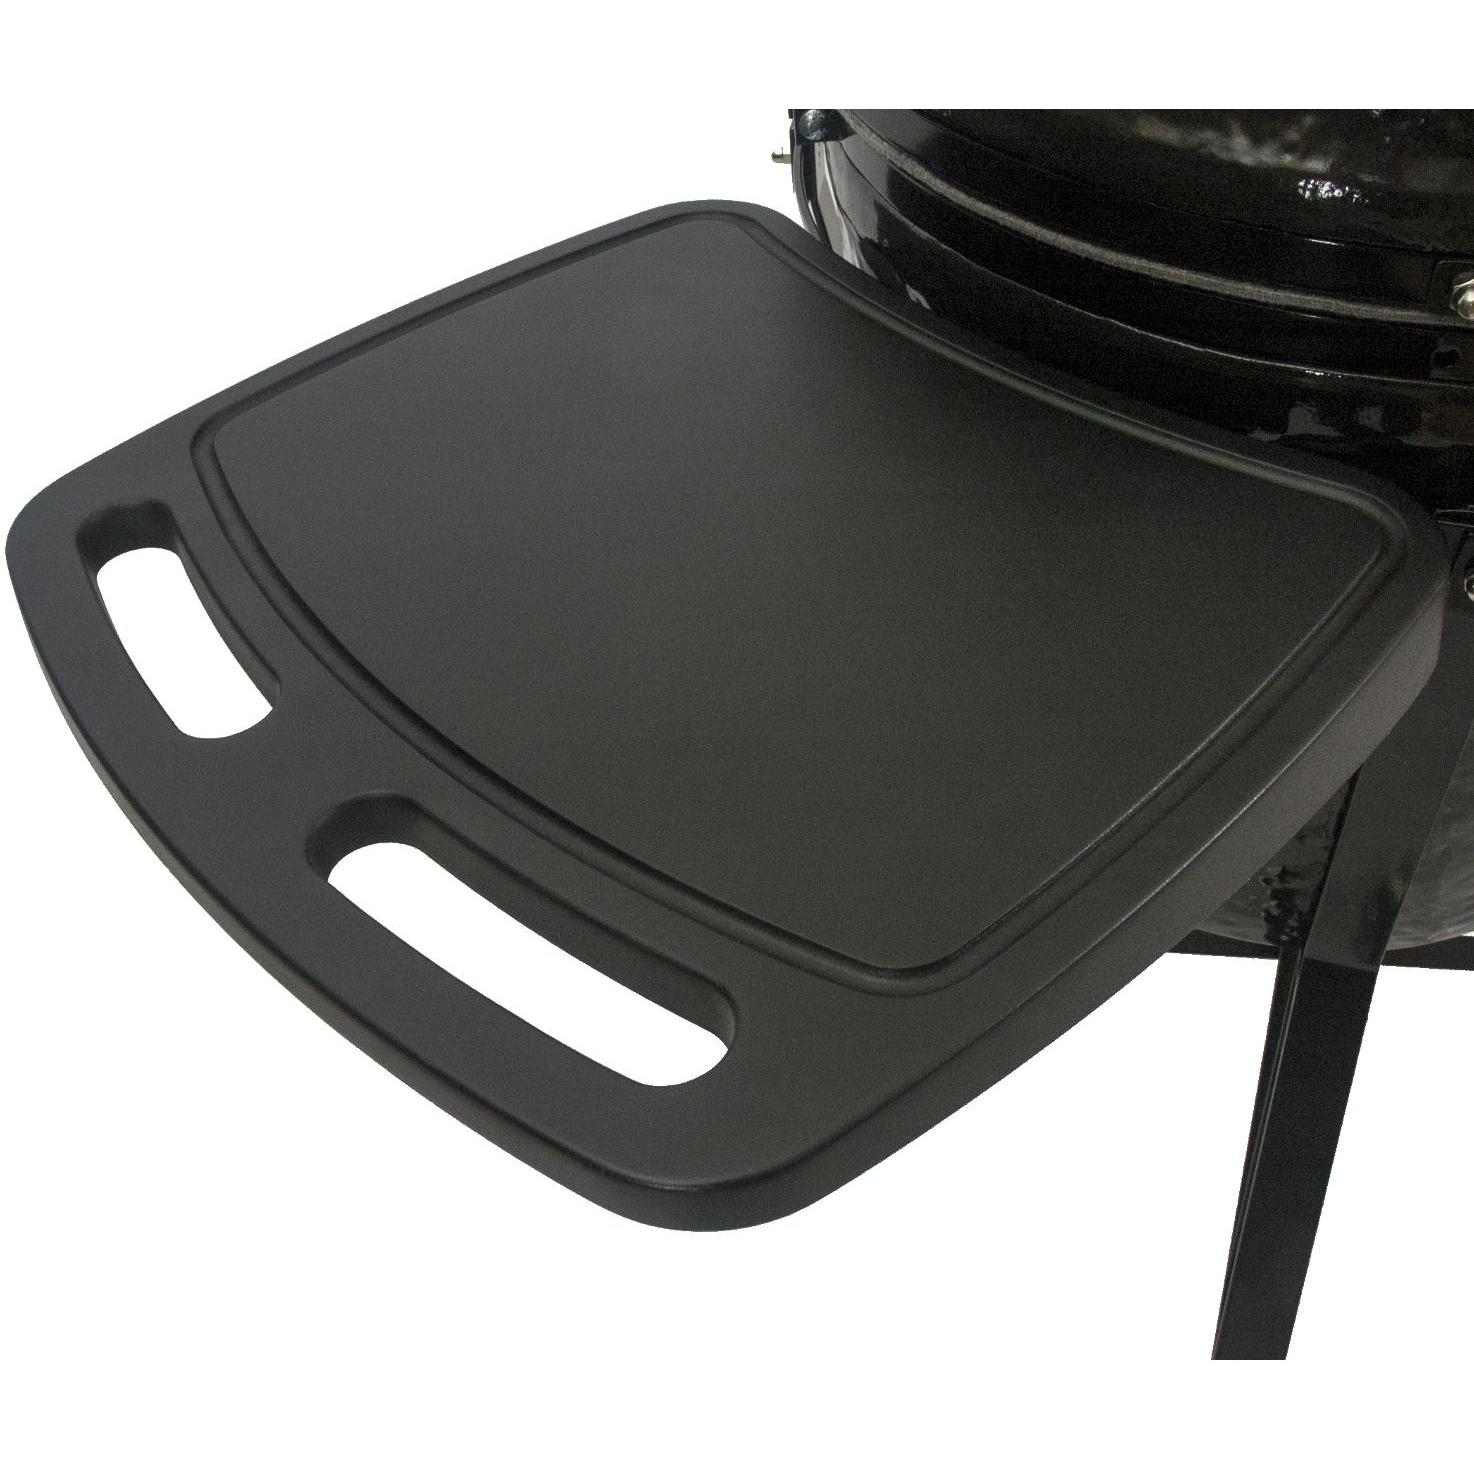 Primo All-In-One Oval XL Ceramic Kamado Grill With Cradle & Side Shelves